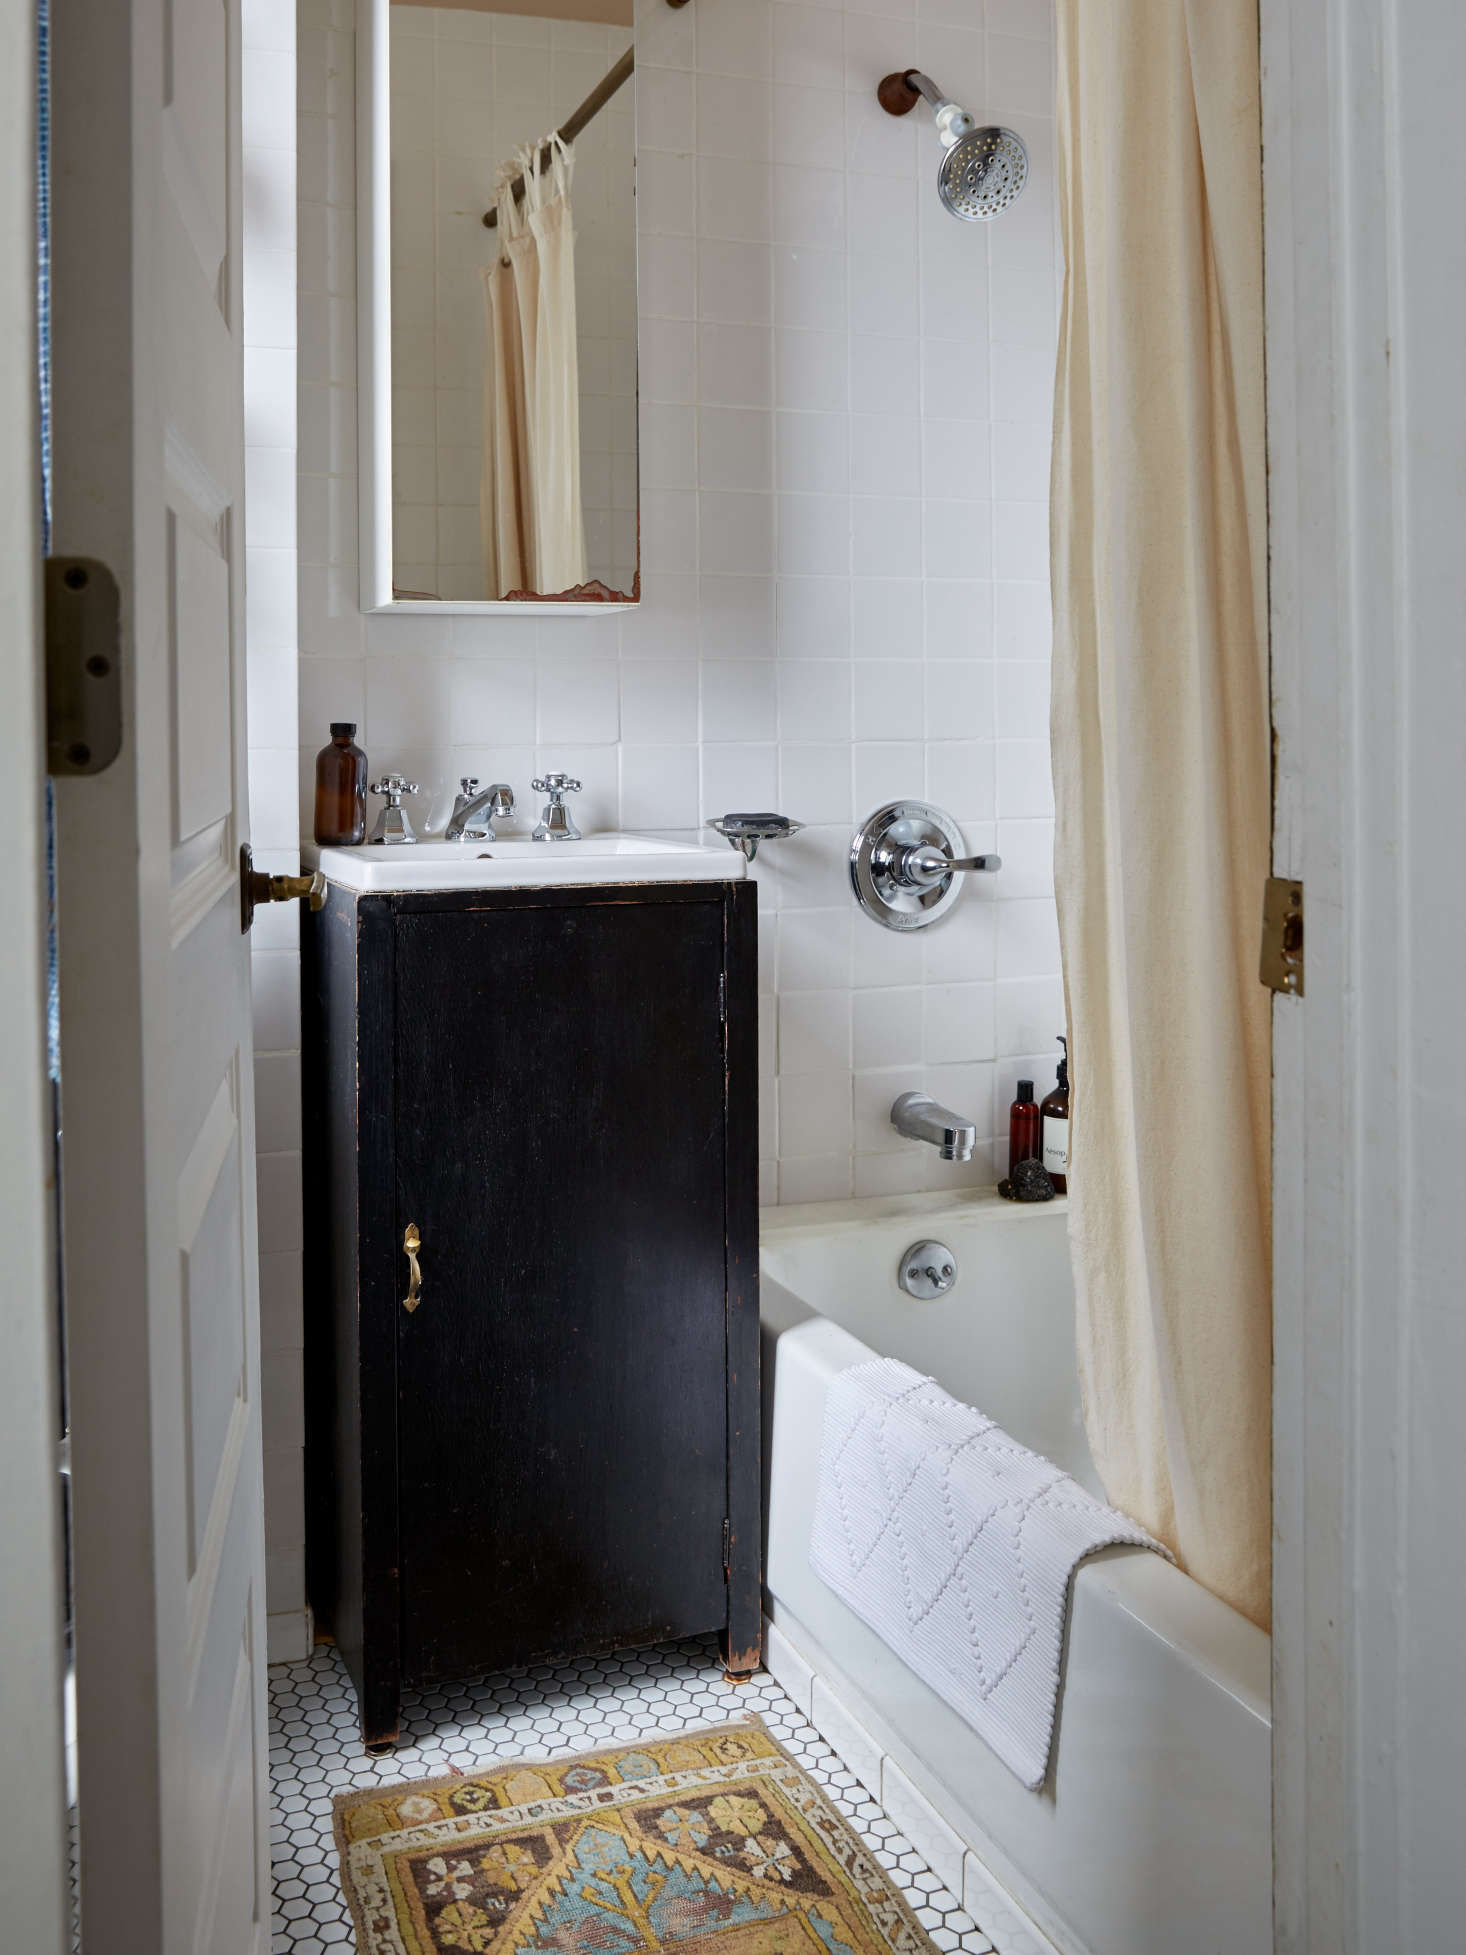 Small bathroom solution: a sink in a vintage record player cabinet